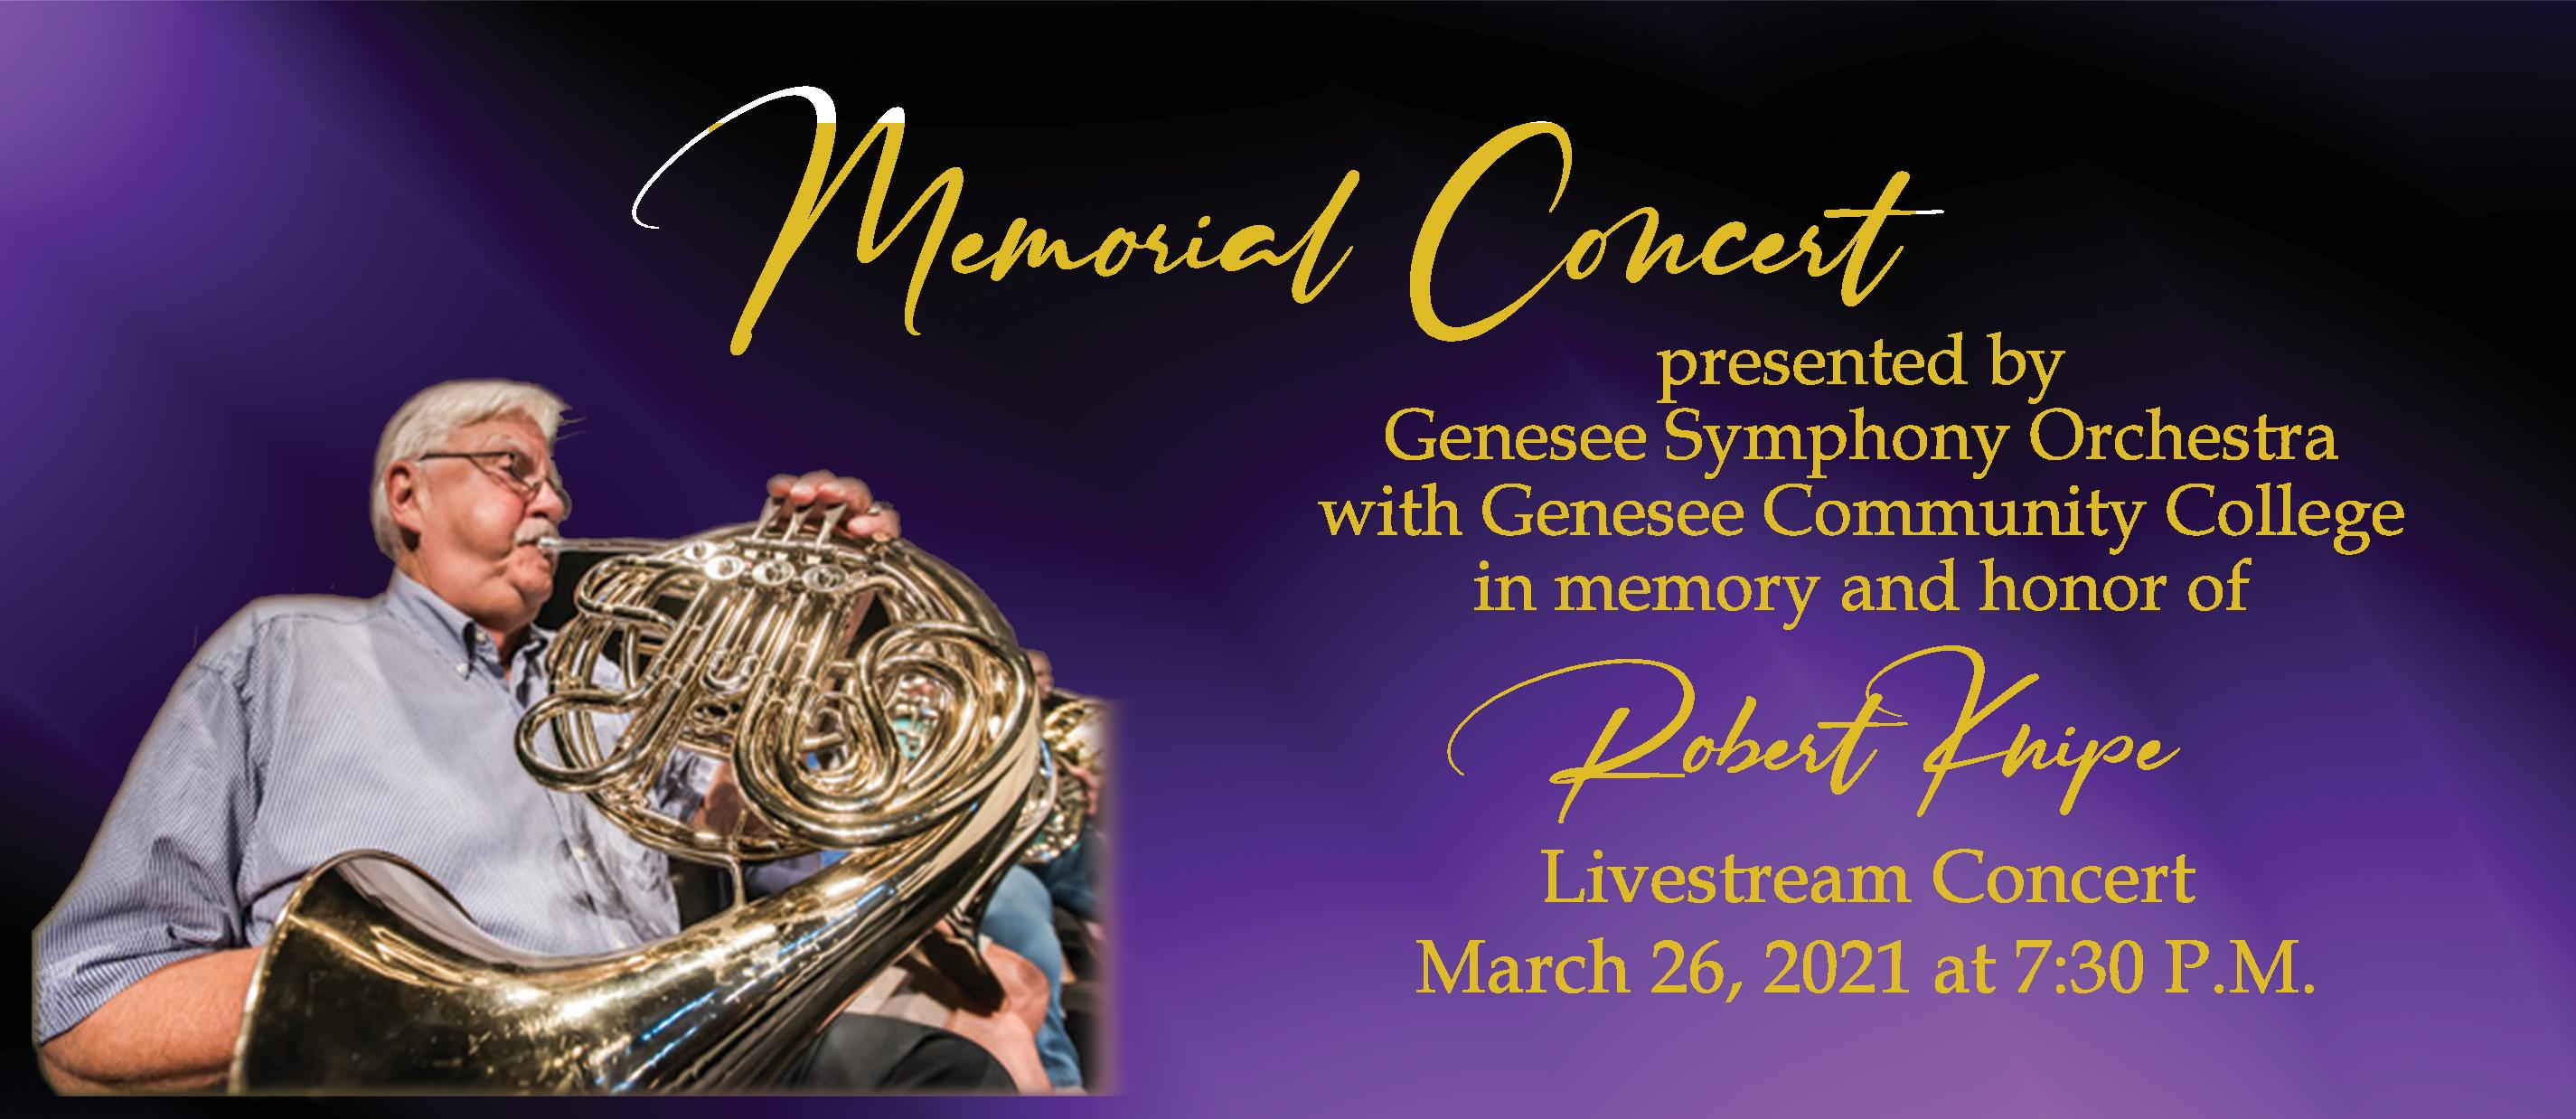 Bob Knipe Memorial concert page 1 of 2